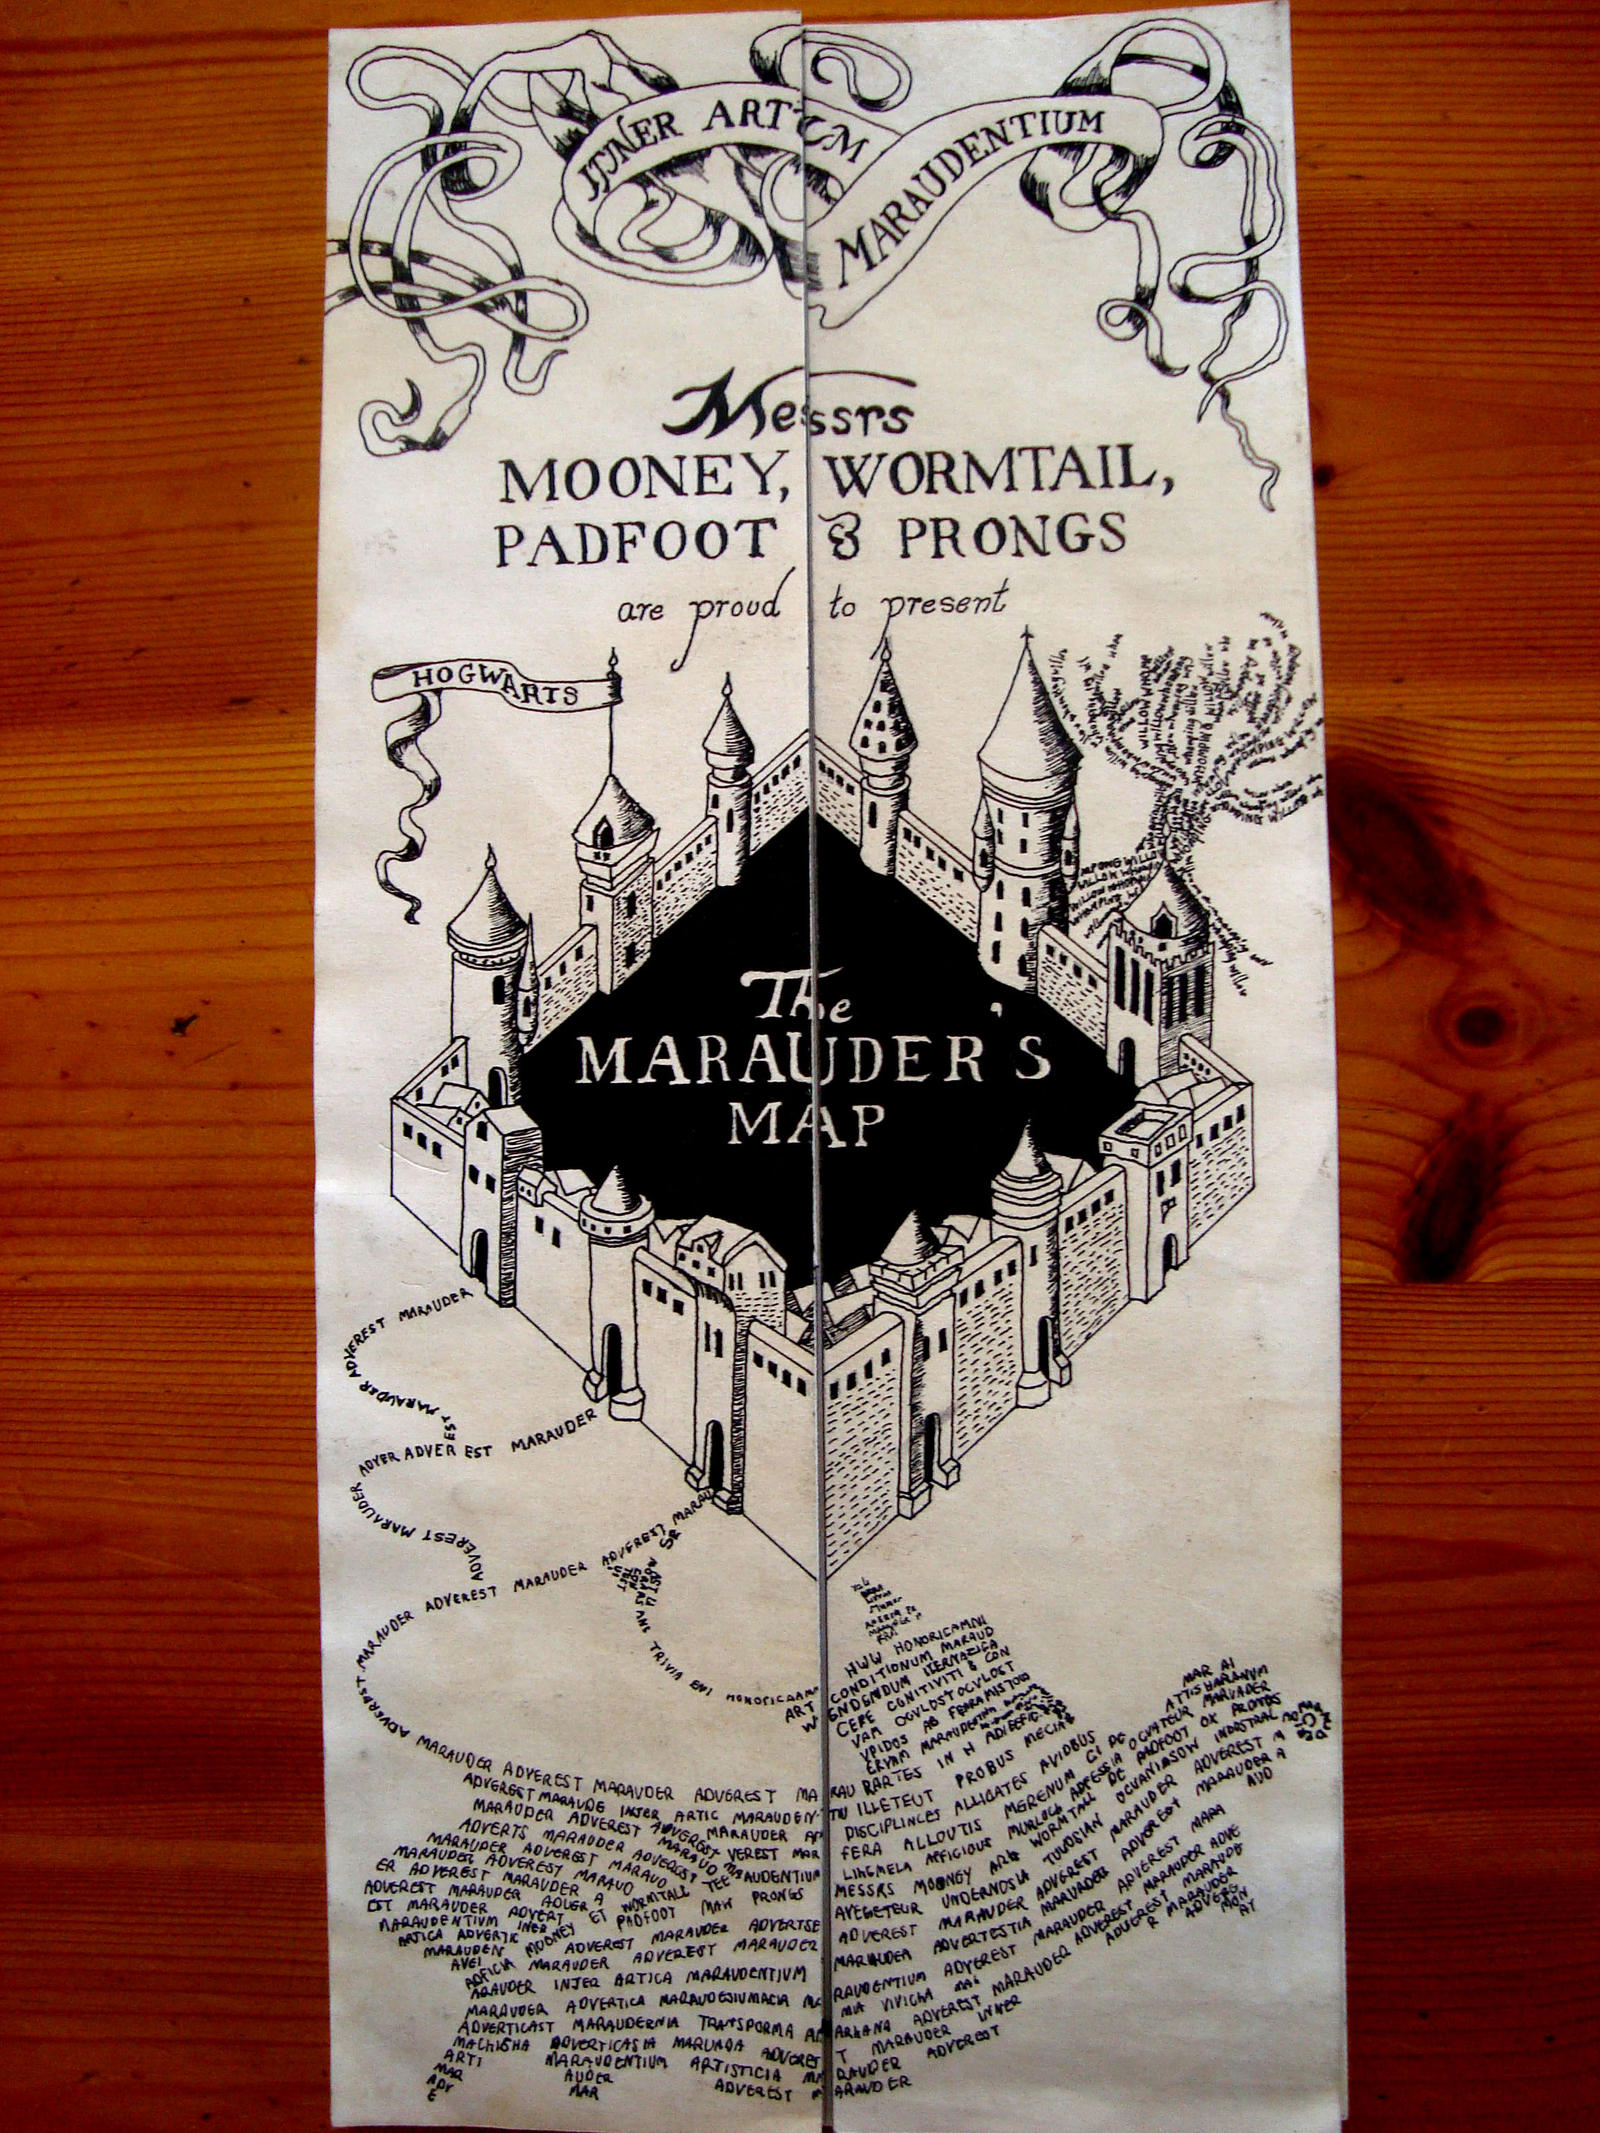 Pin by Cara Cooper on Harry Harry Harry | Hogwarts ... |Marauders Map Drawing